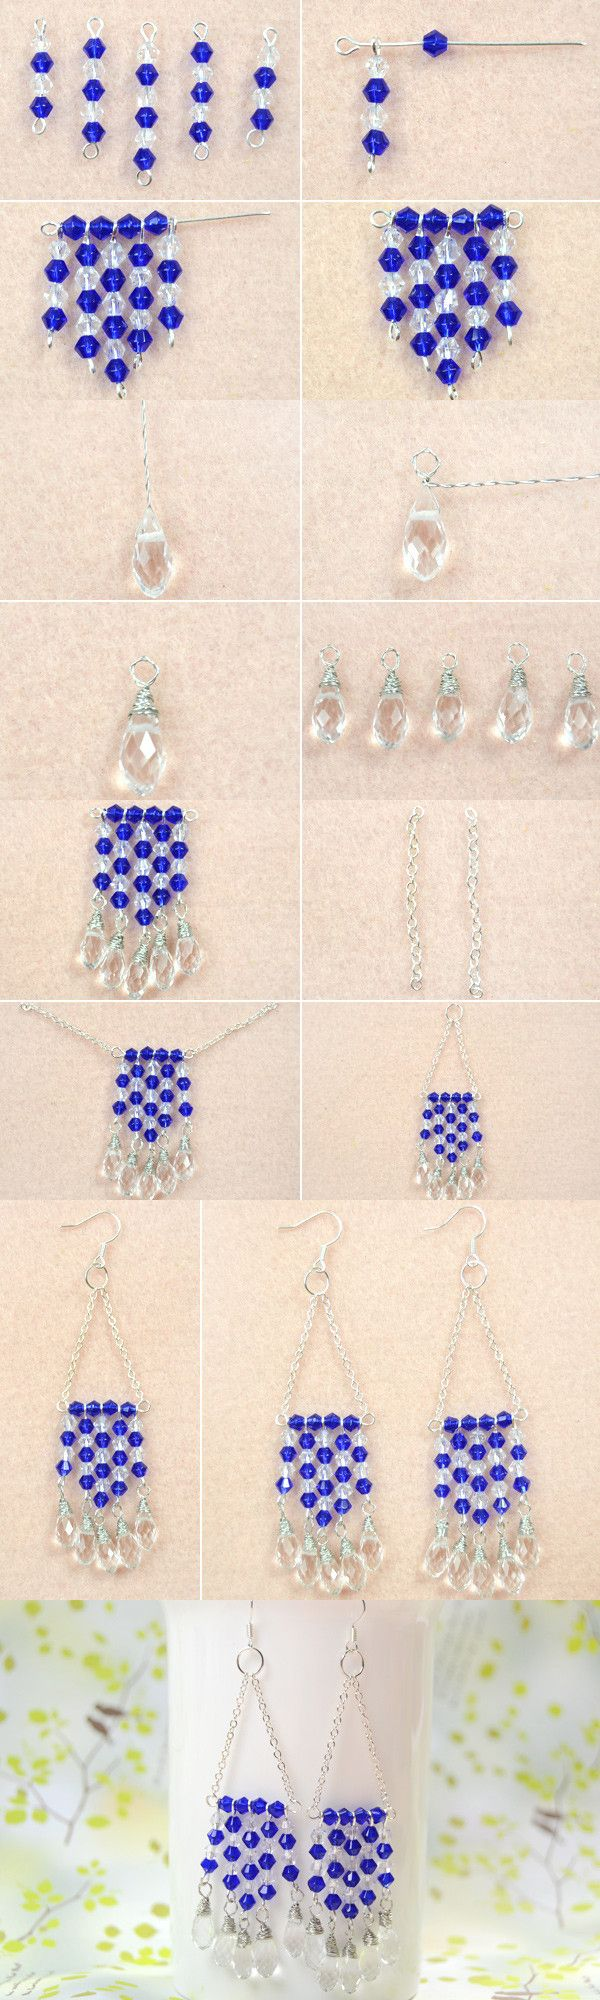 Tutorial on blue crystal beaded fringe earrings making from LC.Pandahall.com